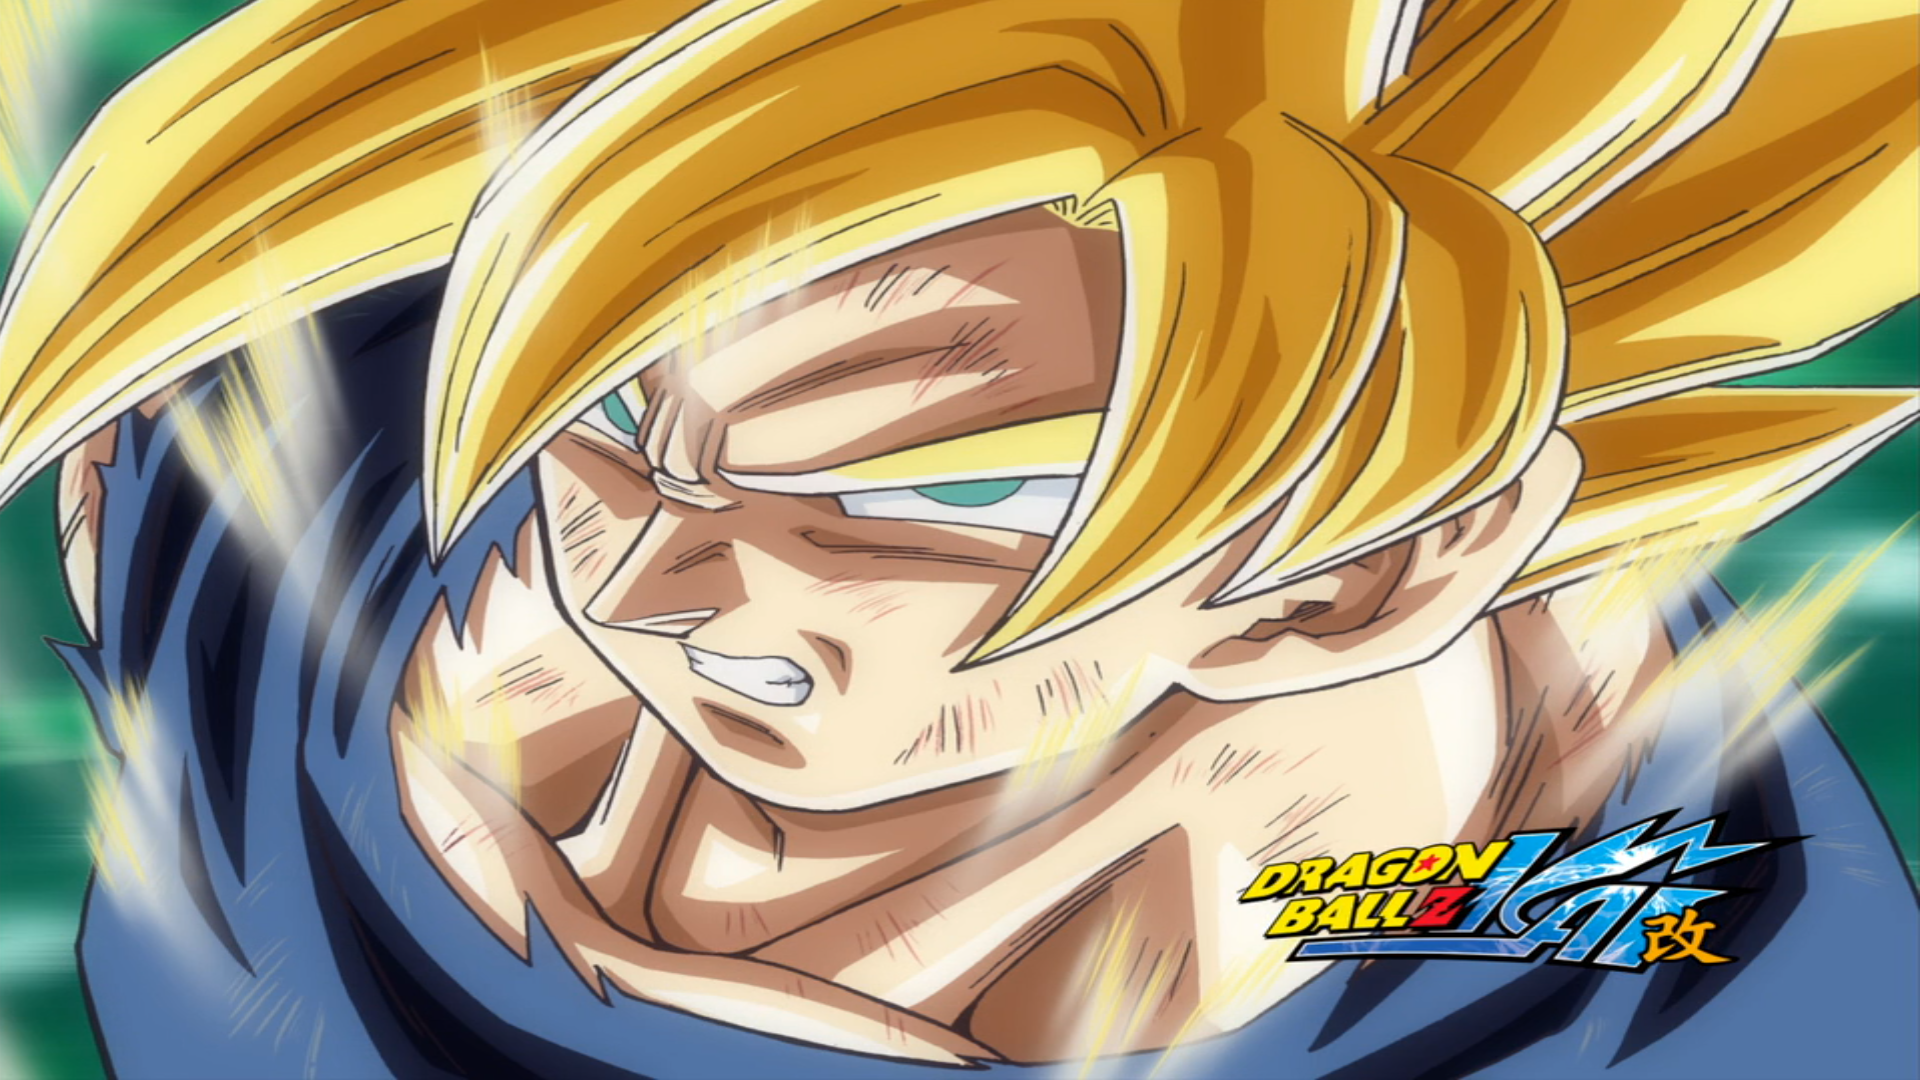 Dragon Ball Z KAI Goku Super Saiyan Wallpaper (con